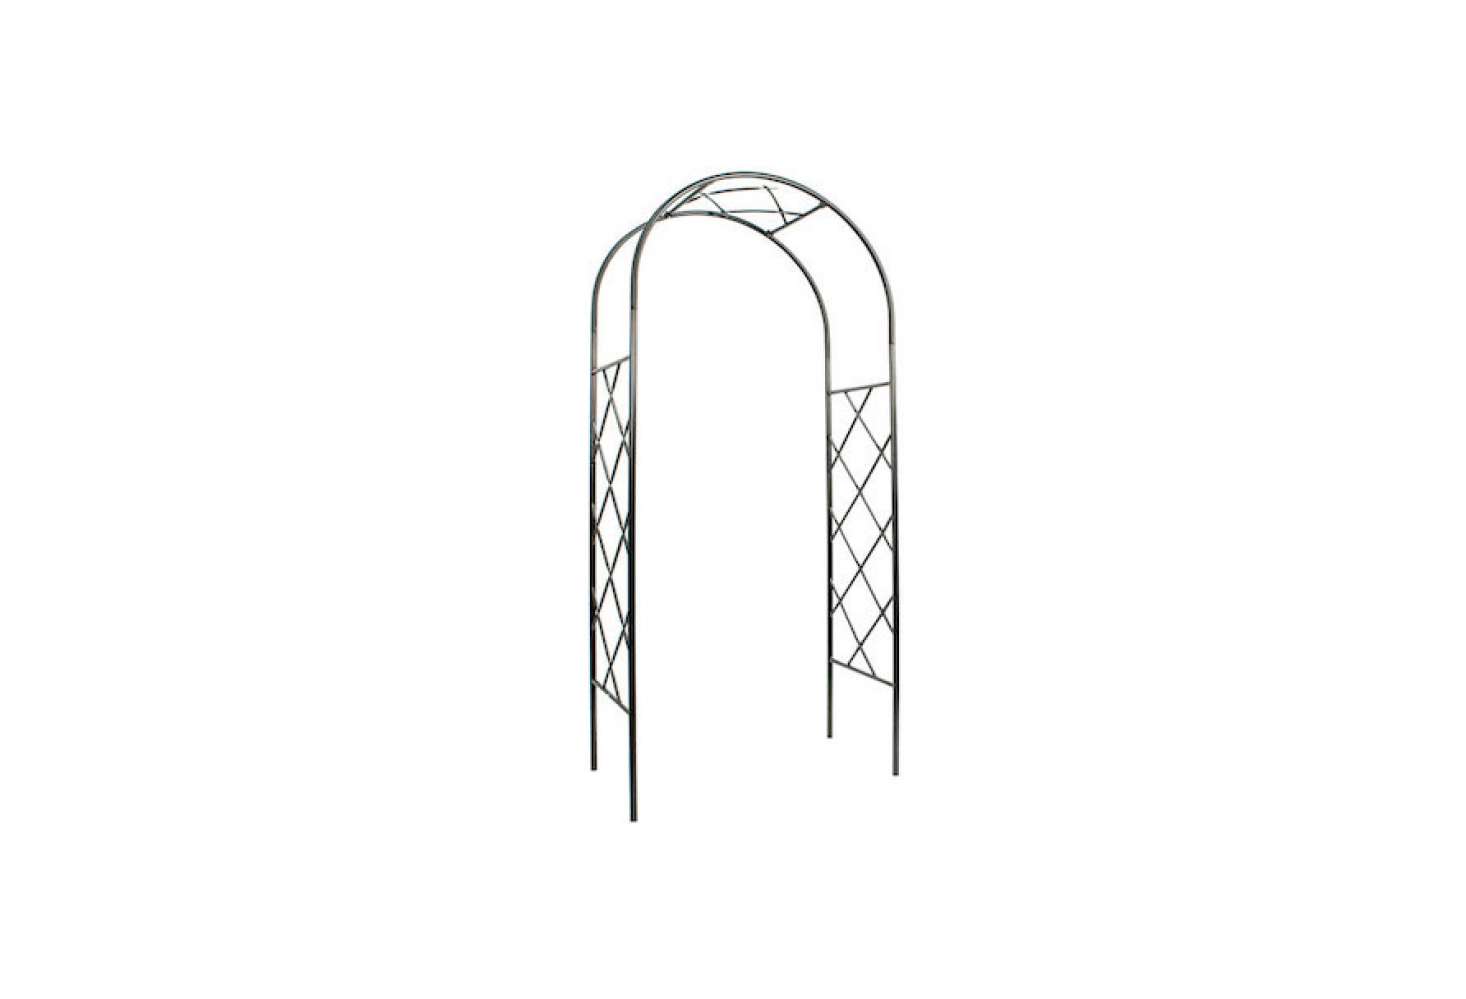 See similar fretwork metal arbors in Easy Pieces: Arched Arbors. Photograph via The Monticello Shop.